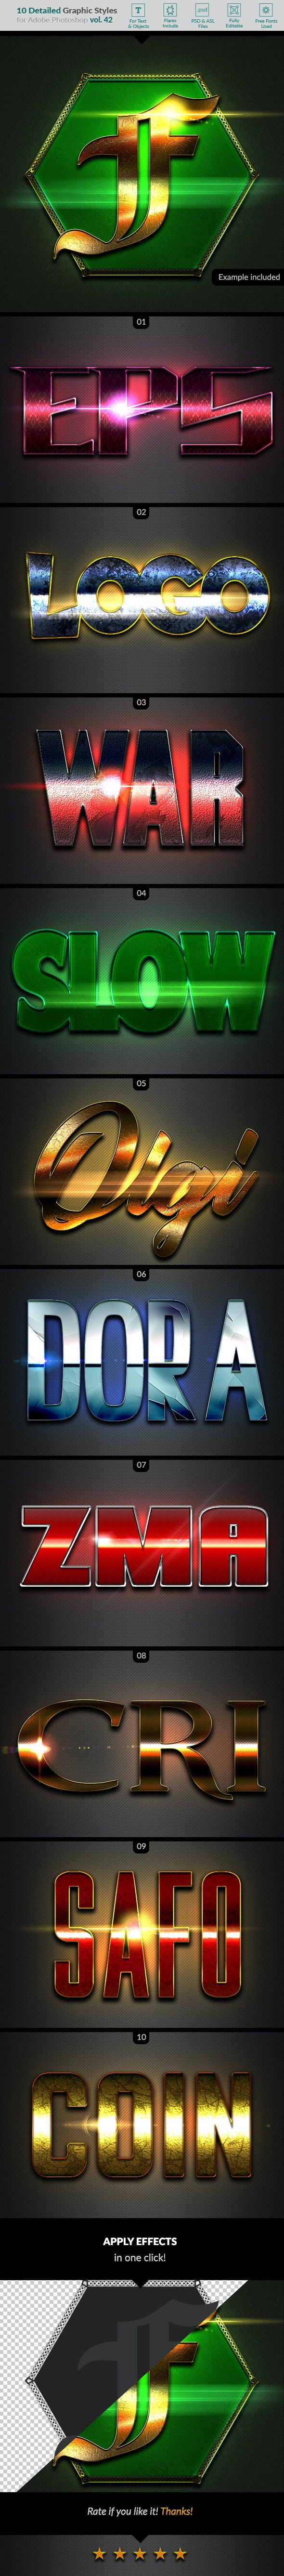 10 Text Effects Vol. 42 - Text Effects Styles